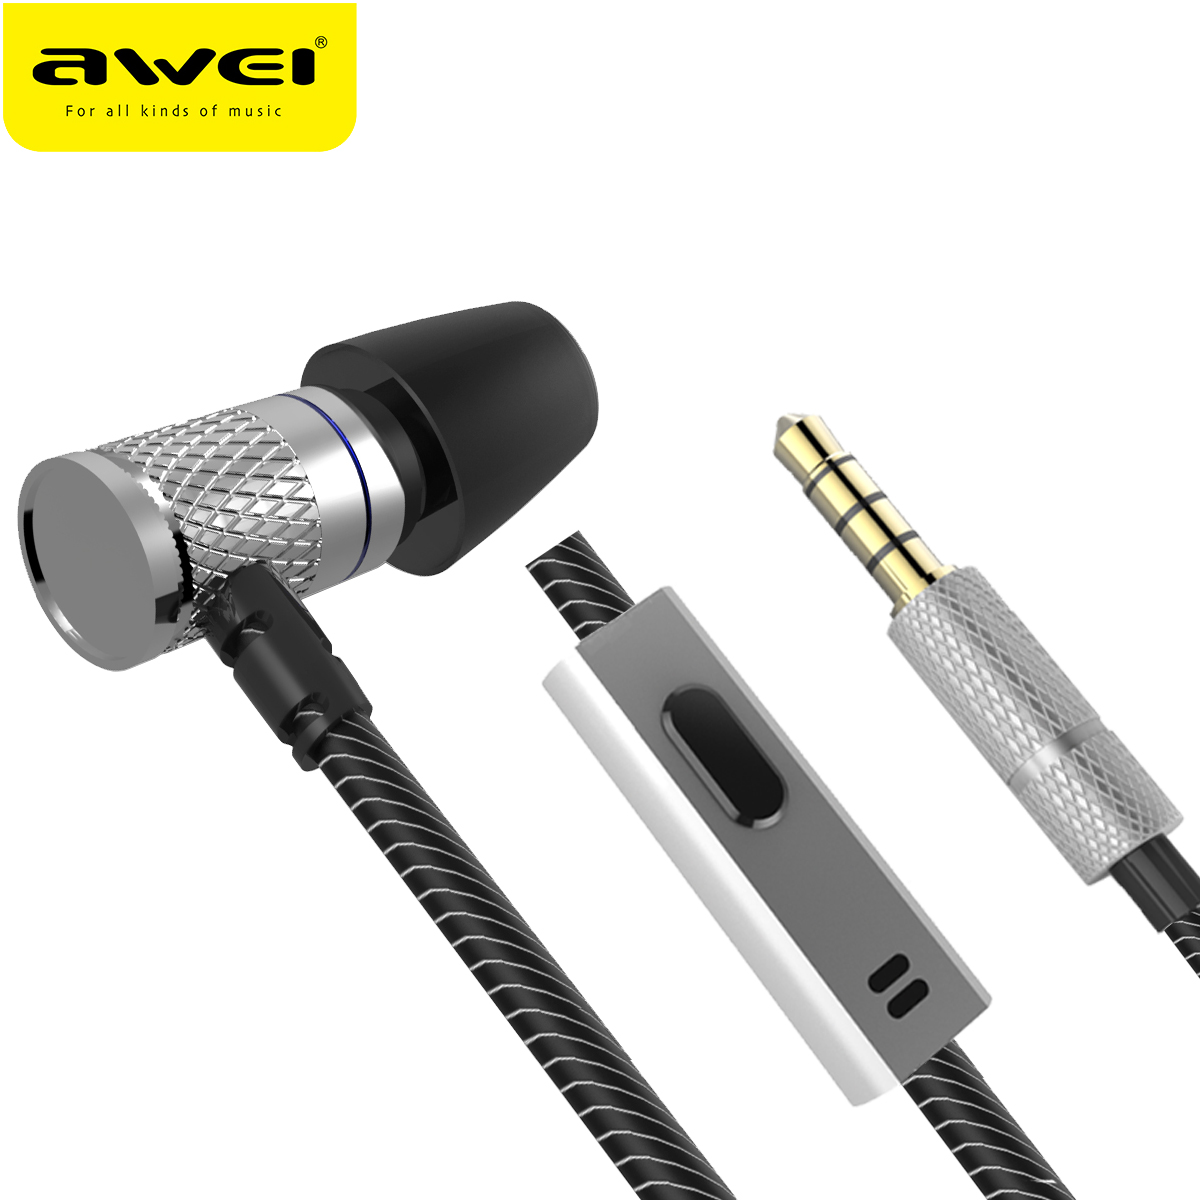 AWEI ES-660I In-Ear Wired Earphone Metal Headset HIFI fone de ouvido Audifonos Casque Heavy Bass Earbuds Headset With Mic awei a920bls bluetooth headphone fone de ouvido wireless earphone sports headset hands free casque with mic audifonos cordless